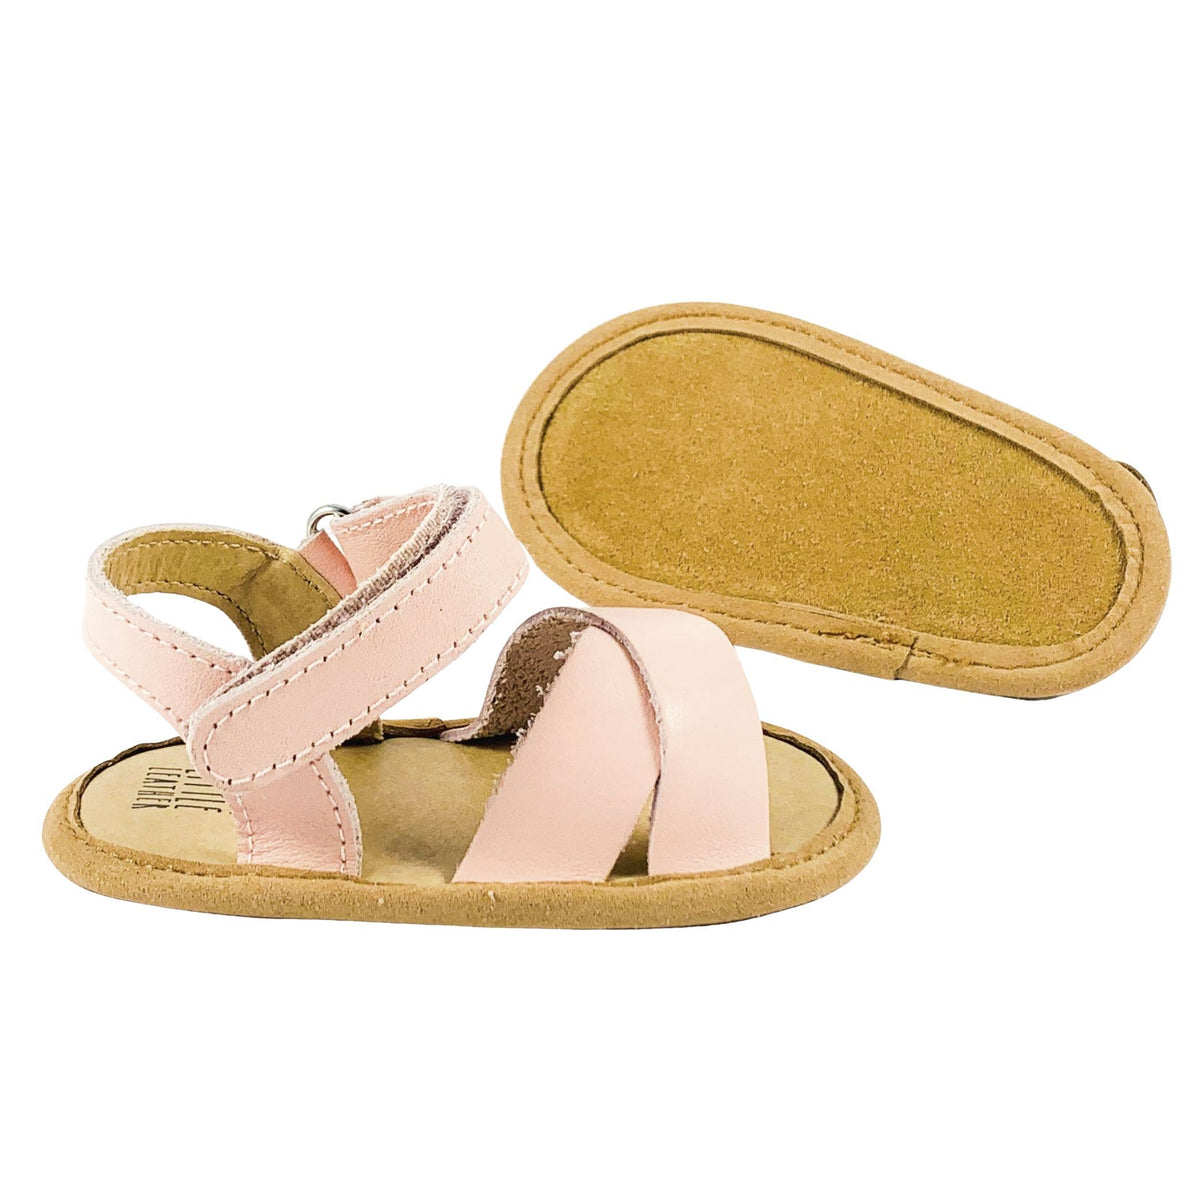 Leather-Toddler-Sandals-Sole-View-Pink-Colour